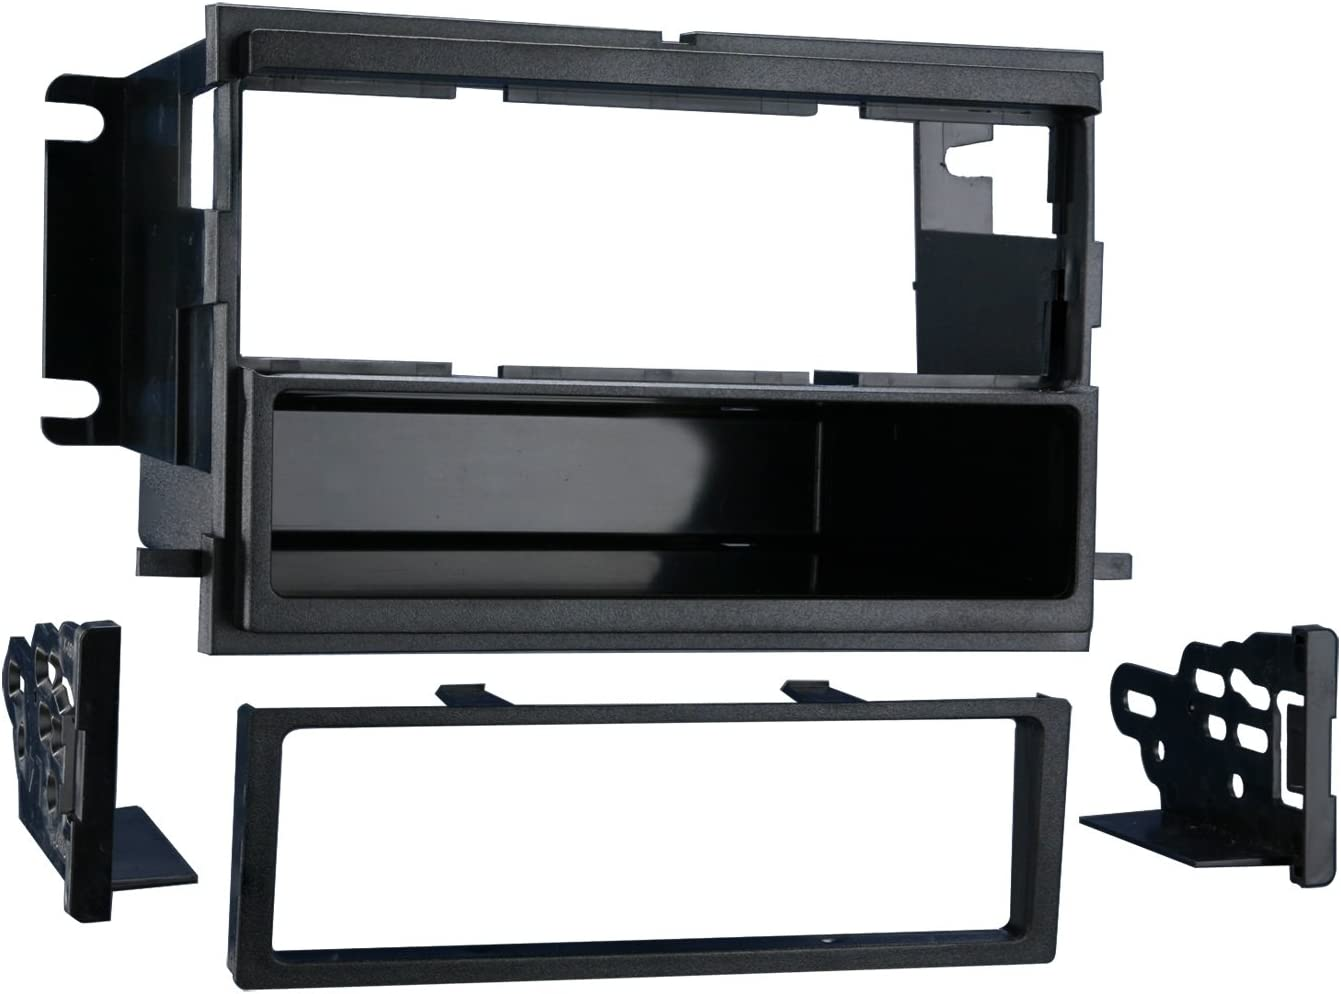 Metra 99-5808 Single DIN Installation Multi-Kit for Select 2004-up Ford//Mercury Vehicles Black